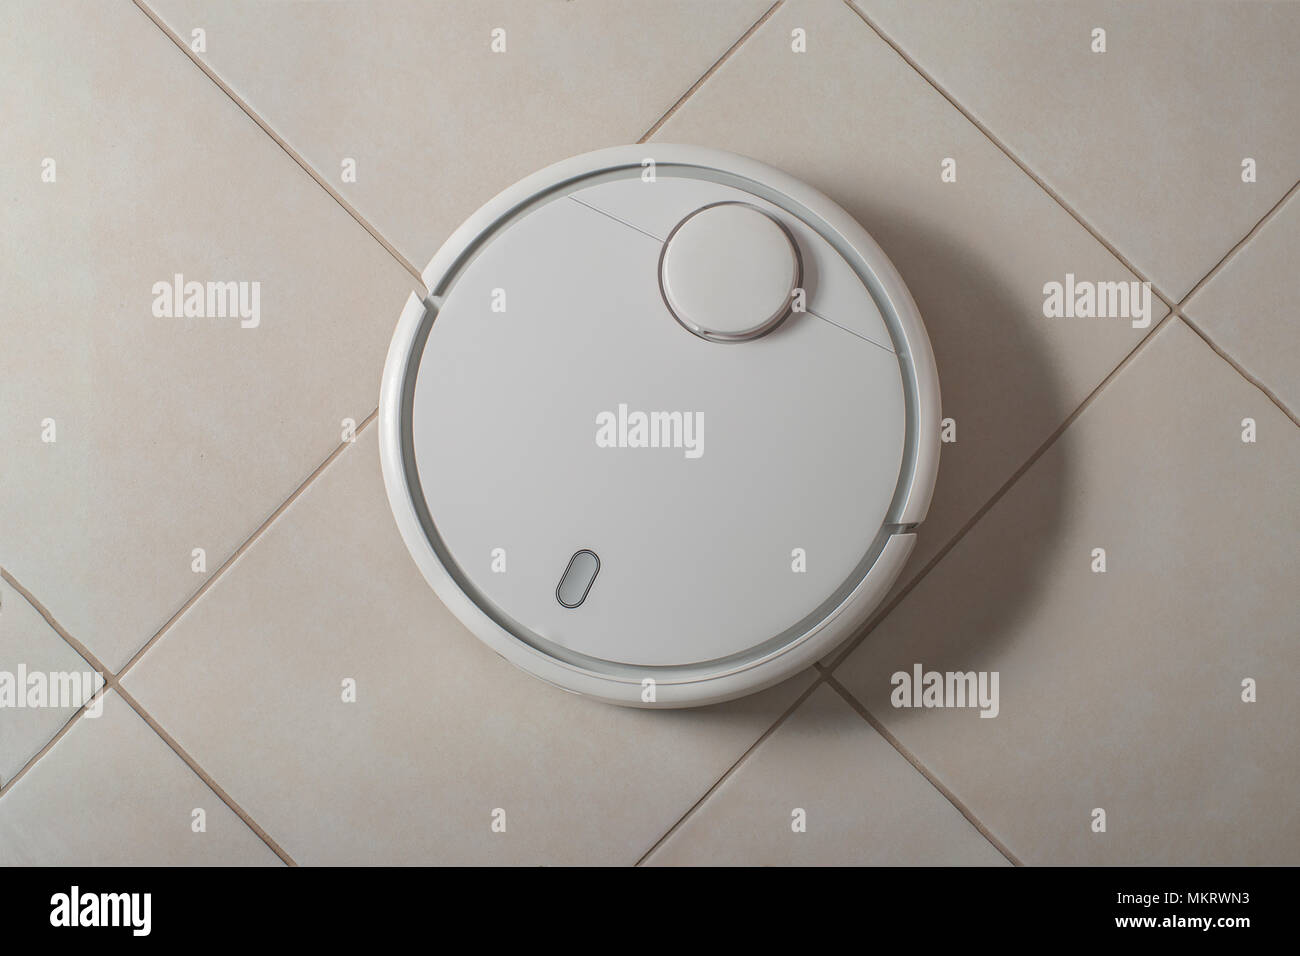 Robot Vacuum Cleaner With Shadow Cleaning Dust On Tile Floors